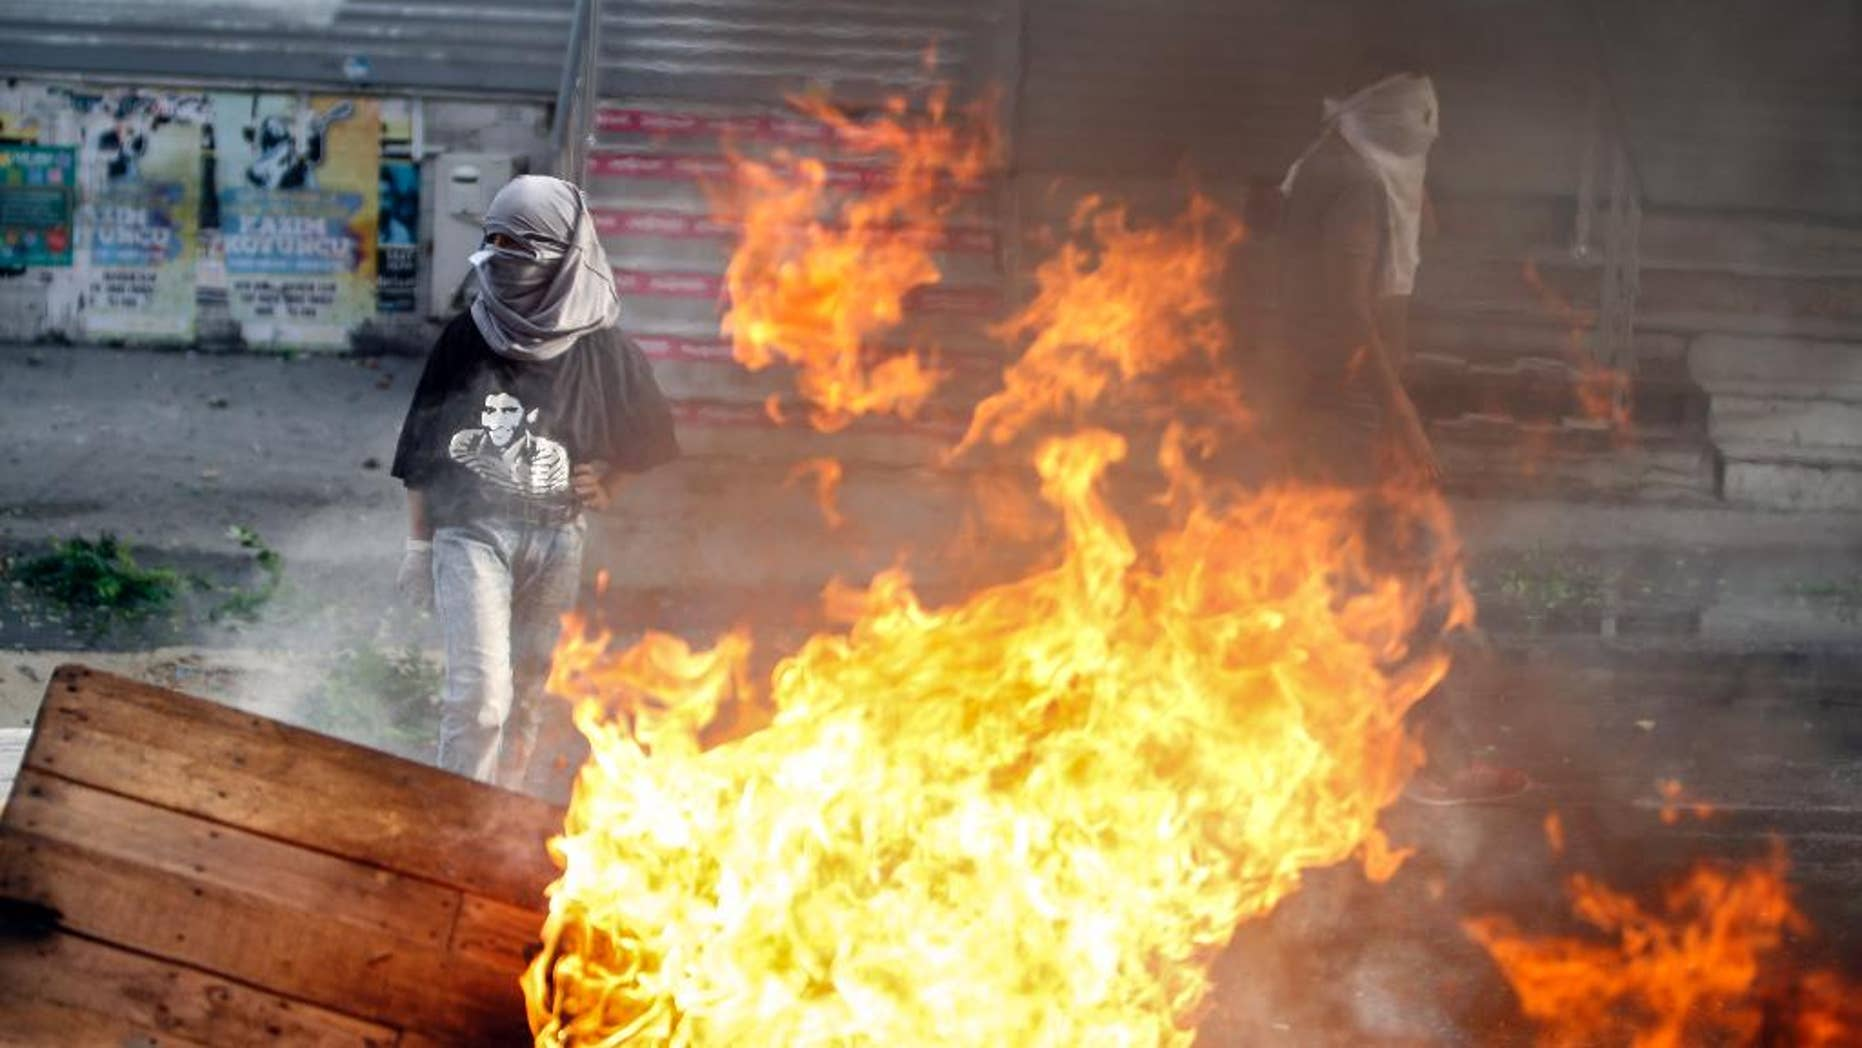 Masked leftist militants clash with security forces during a protest in Gazi district in Istanbul, Turkey, Sunday, Aug. 23, 2015. (AP Photo/Cagdas Erdogan) TURKEY OUT